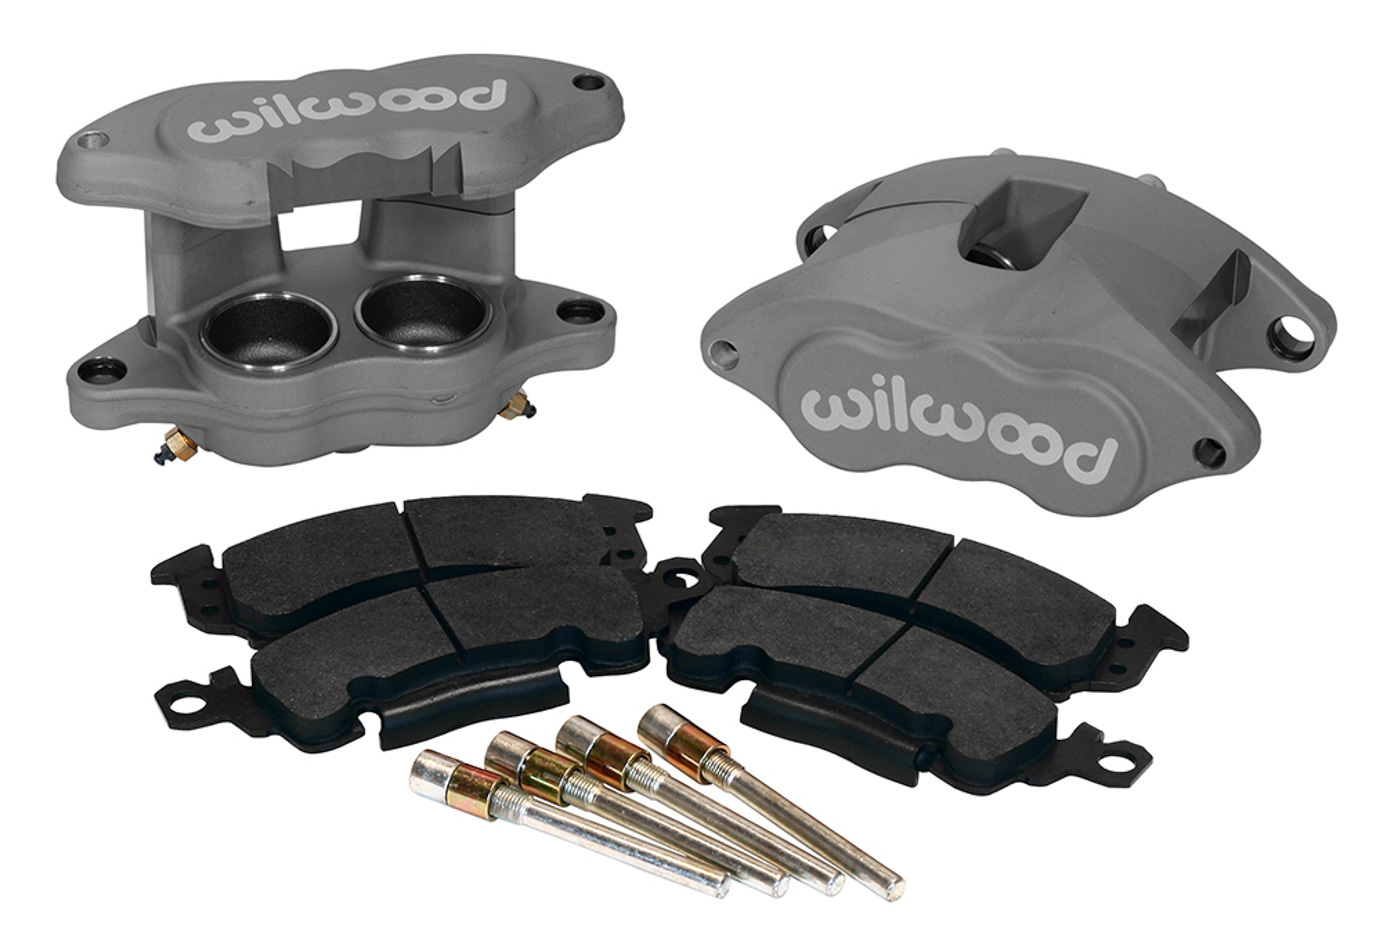 Wilwood 140-11290 Brake Caliper, D52, 2 Piston, Forged Aluminum, Natural, 12.190 in OD x 1.250 in Thick Rotor, 7.060 in Floating Mount, GM 1968-96, Kit